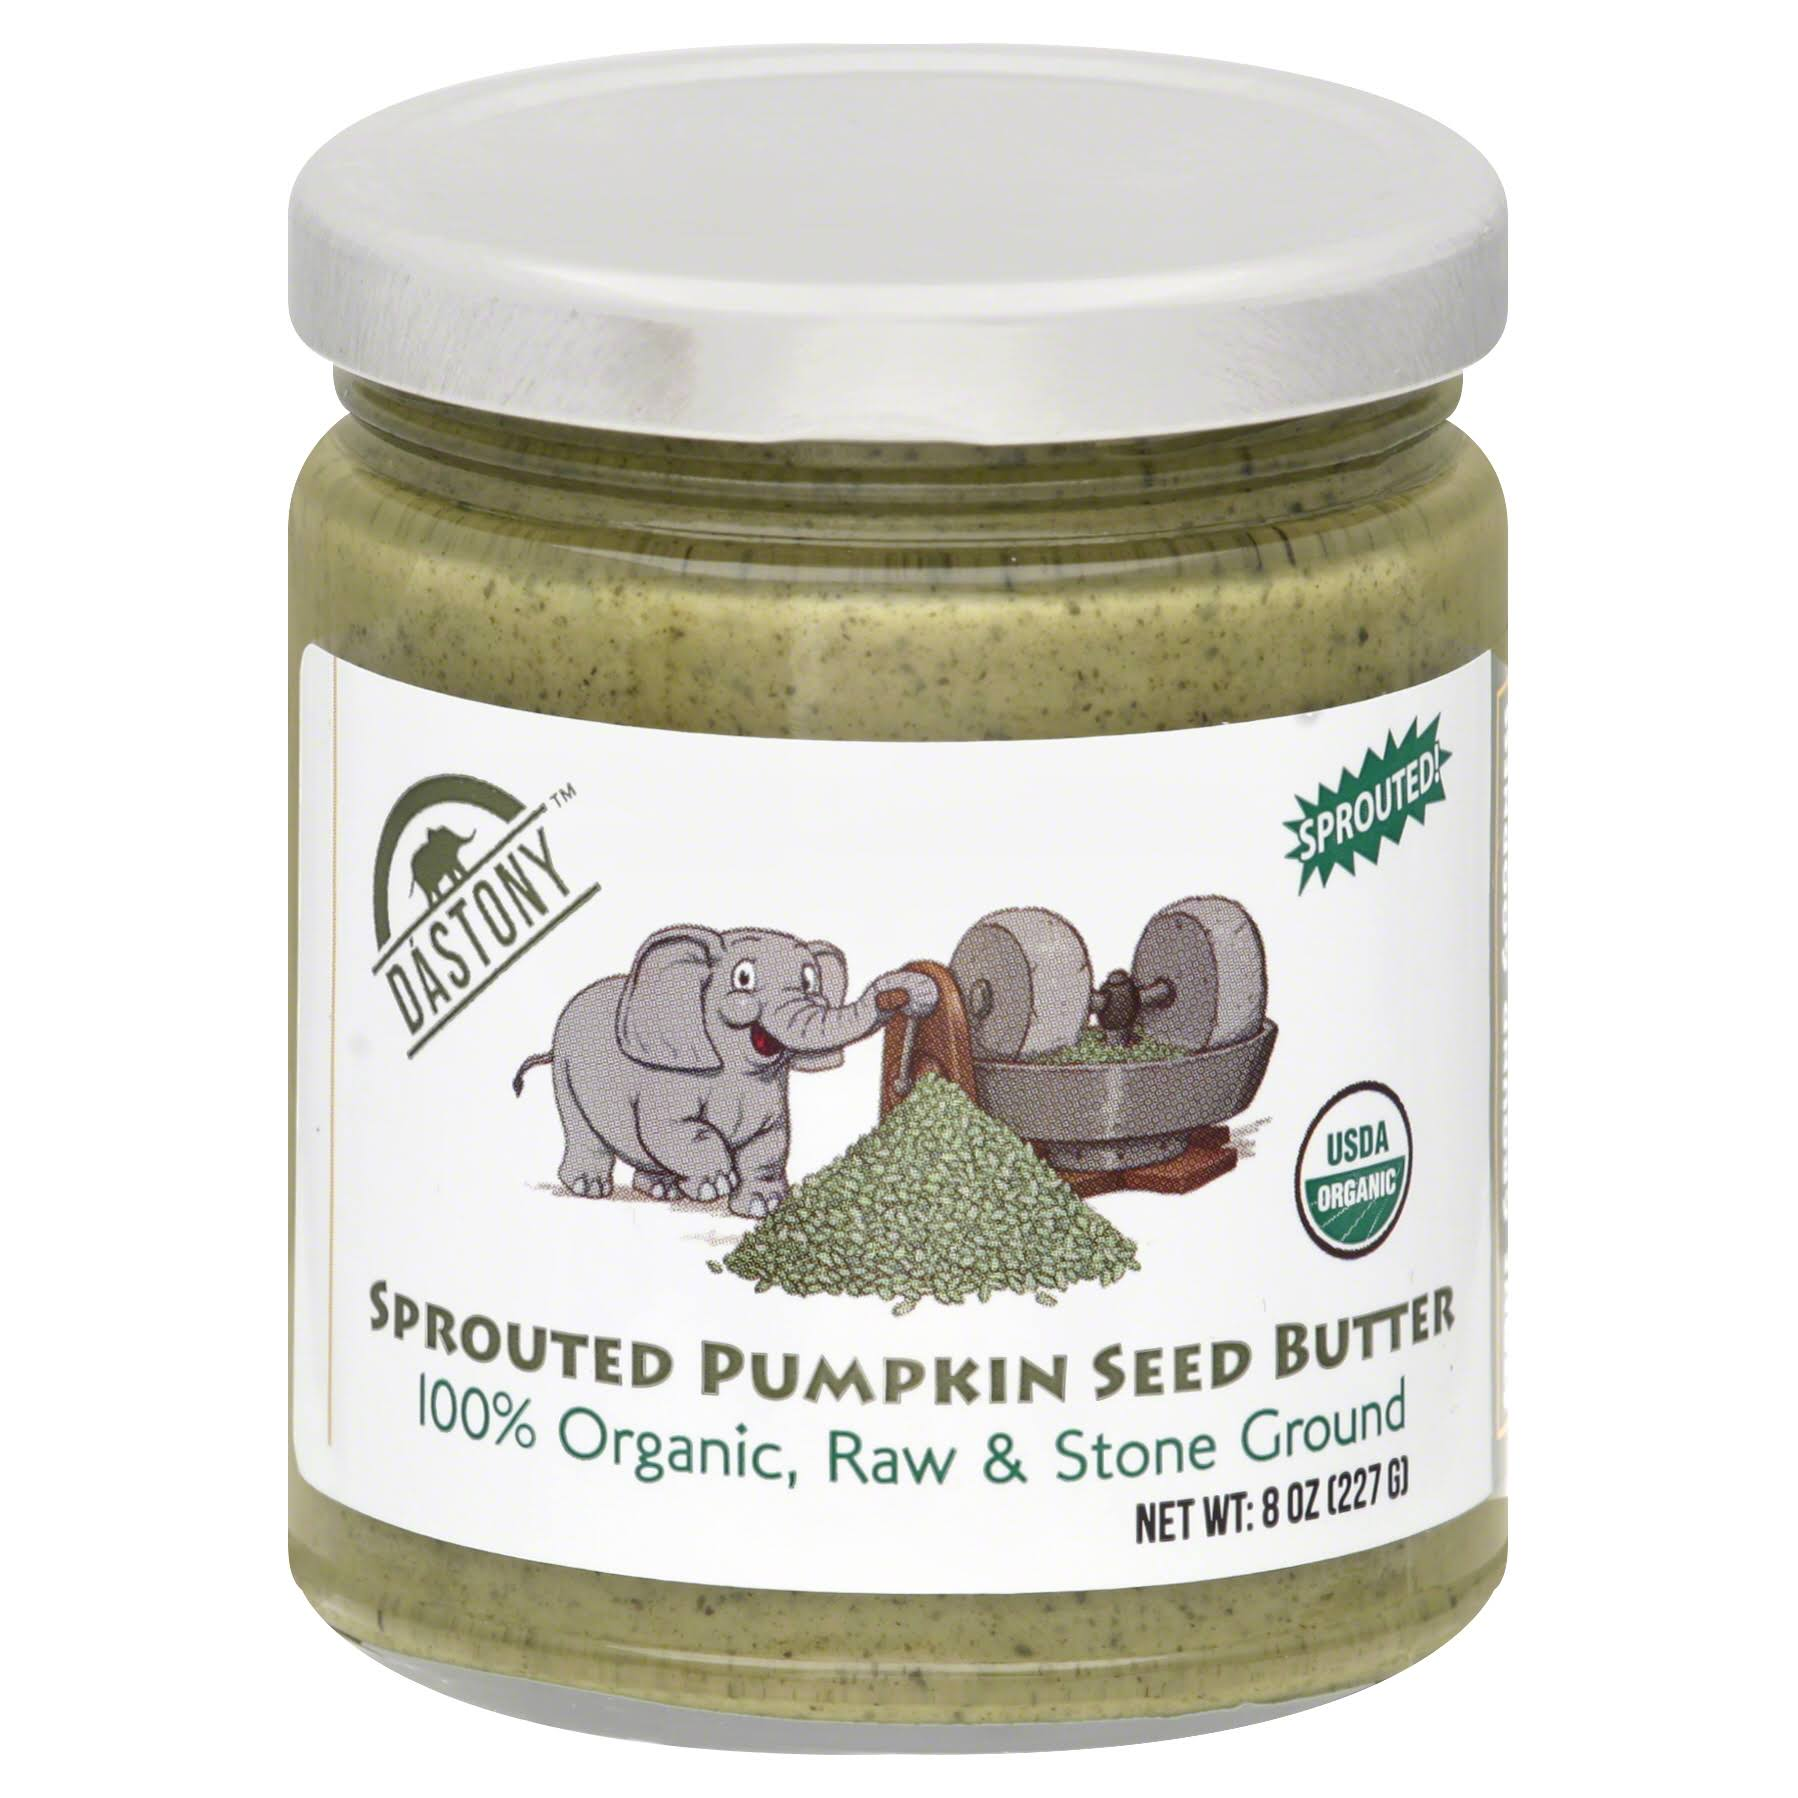 Dastony Sprouted Pumpkin Seed Butter - 8 Oz